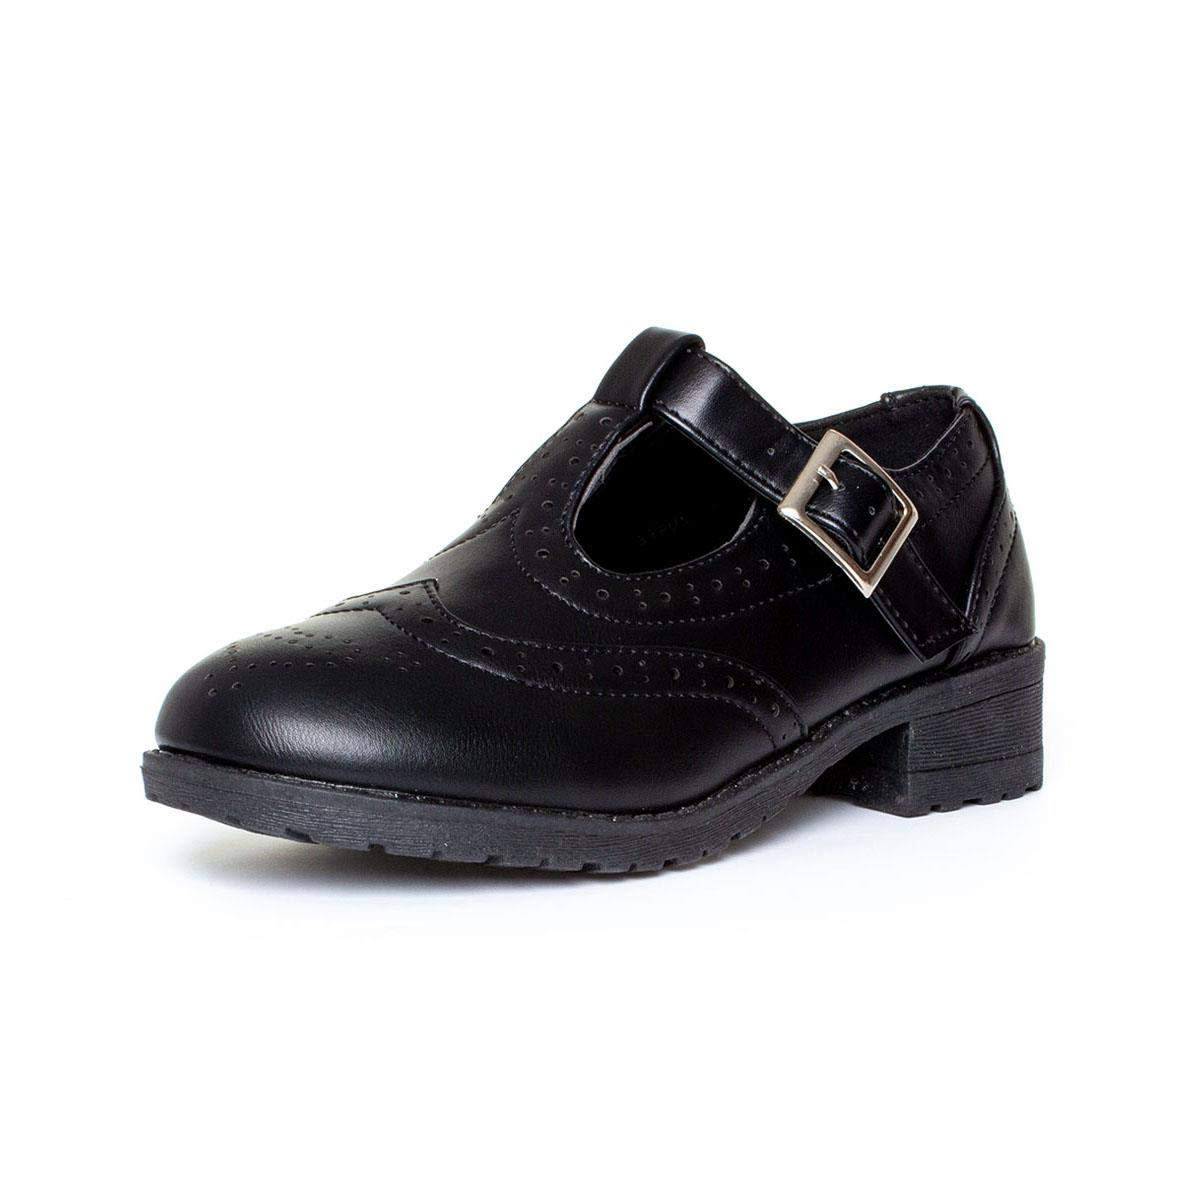 Lilley Girls Lace Up Brogue Shoe in Black Sizes 10,11,12,13,1,2,3,4,5,6